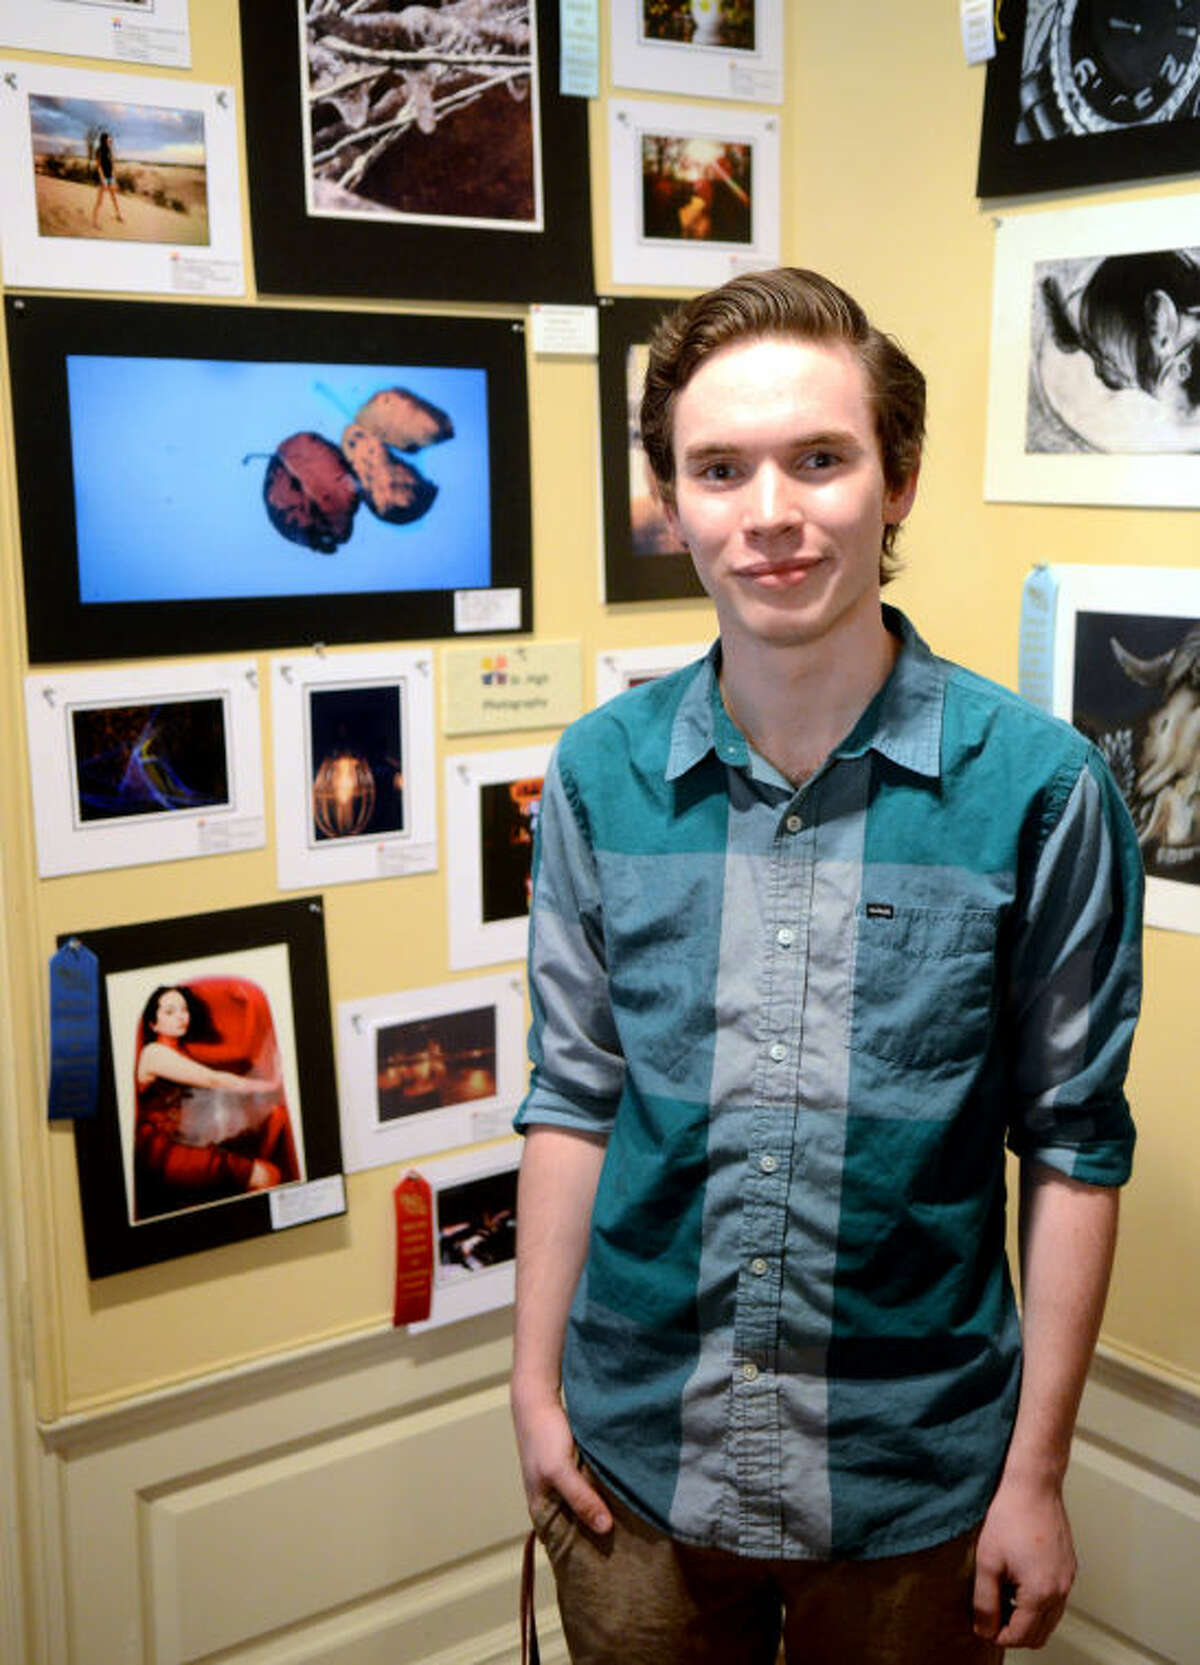 Kolton Cotton stands with photography work on display at the 2014 Student Art Exhibition in the Turner-Thomas Galleries and the Durham Children's Museum on April 3. His picture, bottom left of frame, won first place. James Durbin/Reporter-Telegram